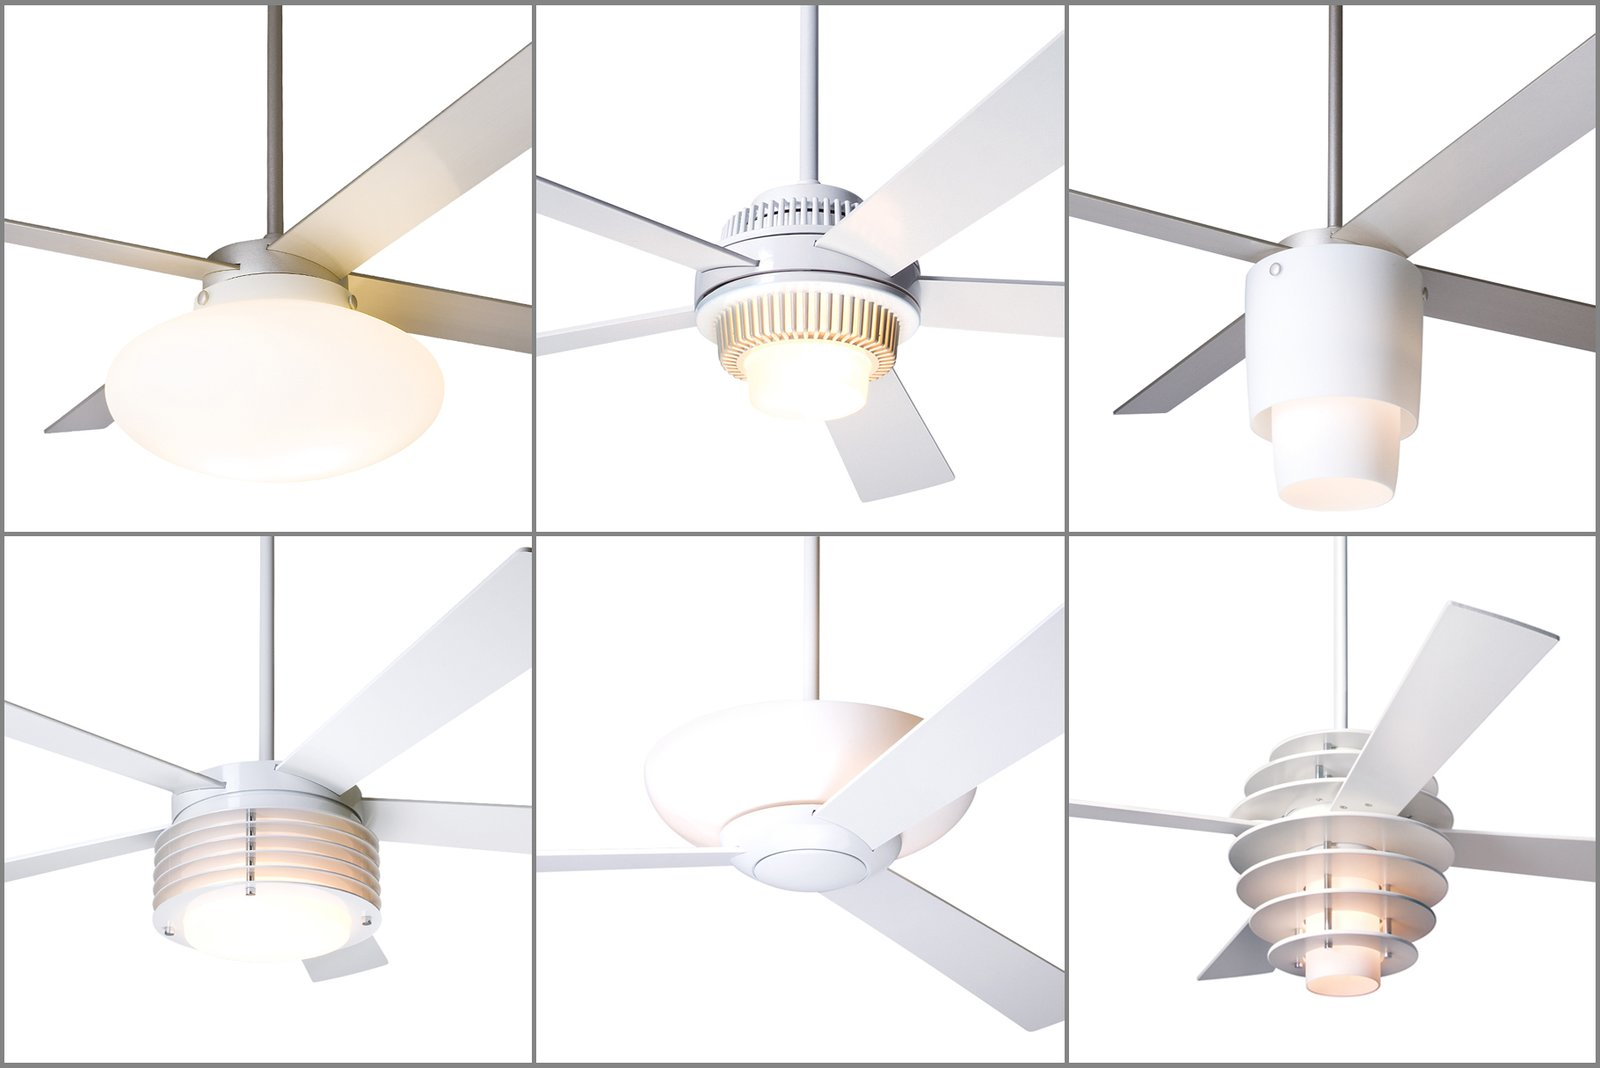 From left to right, top to bottom: the Cloud, Solus, Halo, Pharos, Aurora, and Stella fans with integral lights previously used halogen or compact fluorescent lamps, and are now available with LED lighting. Ceiling fans that come with optional light kits will have LED solutions, too.  Photo 8 of 8 in Taking Flight: A Dose of Brazilian Design Lifts the Ceiling Fan to New Heights